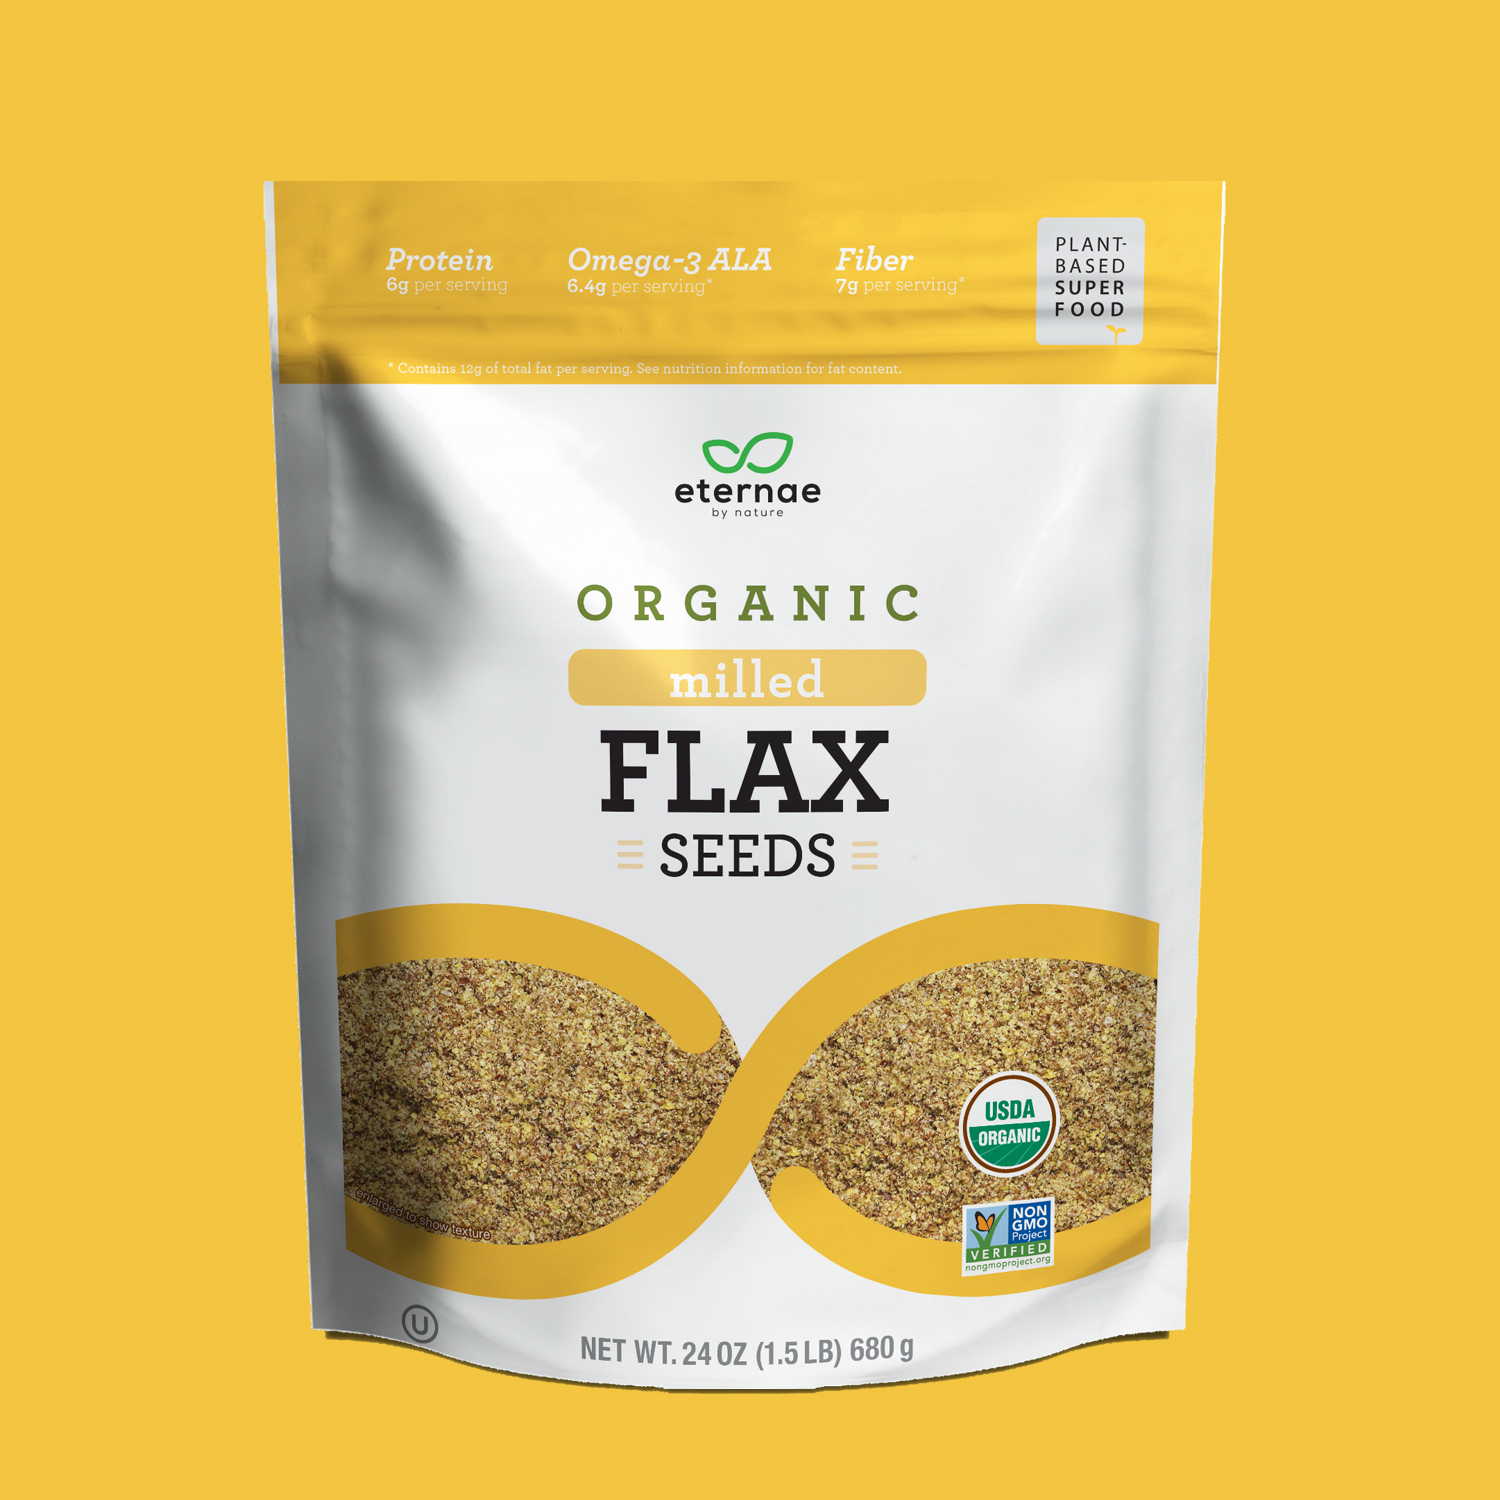 eternae_amazon_productpage_products_1500x1500px_FLAX